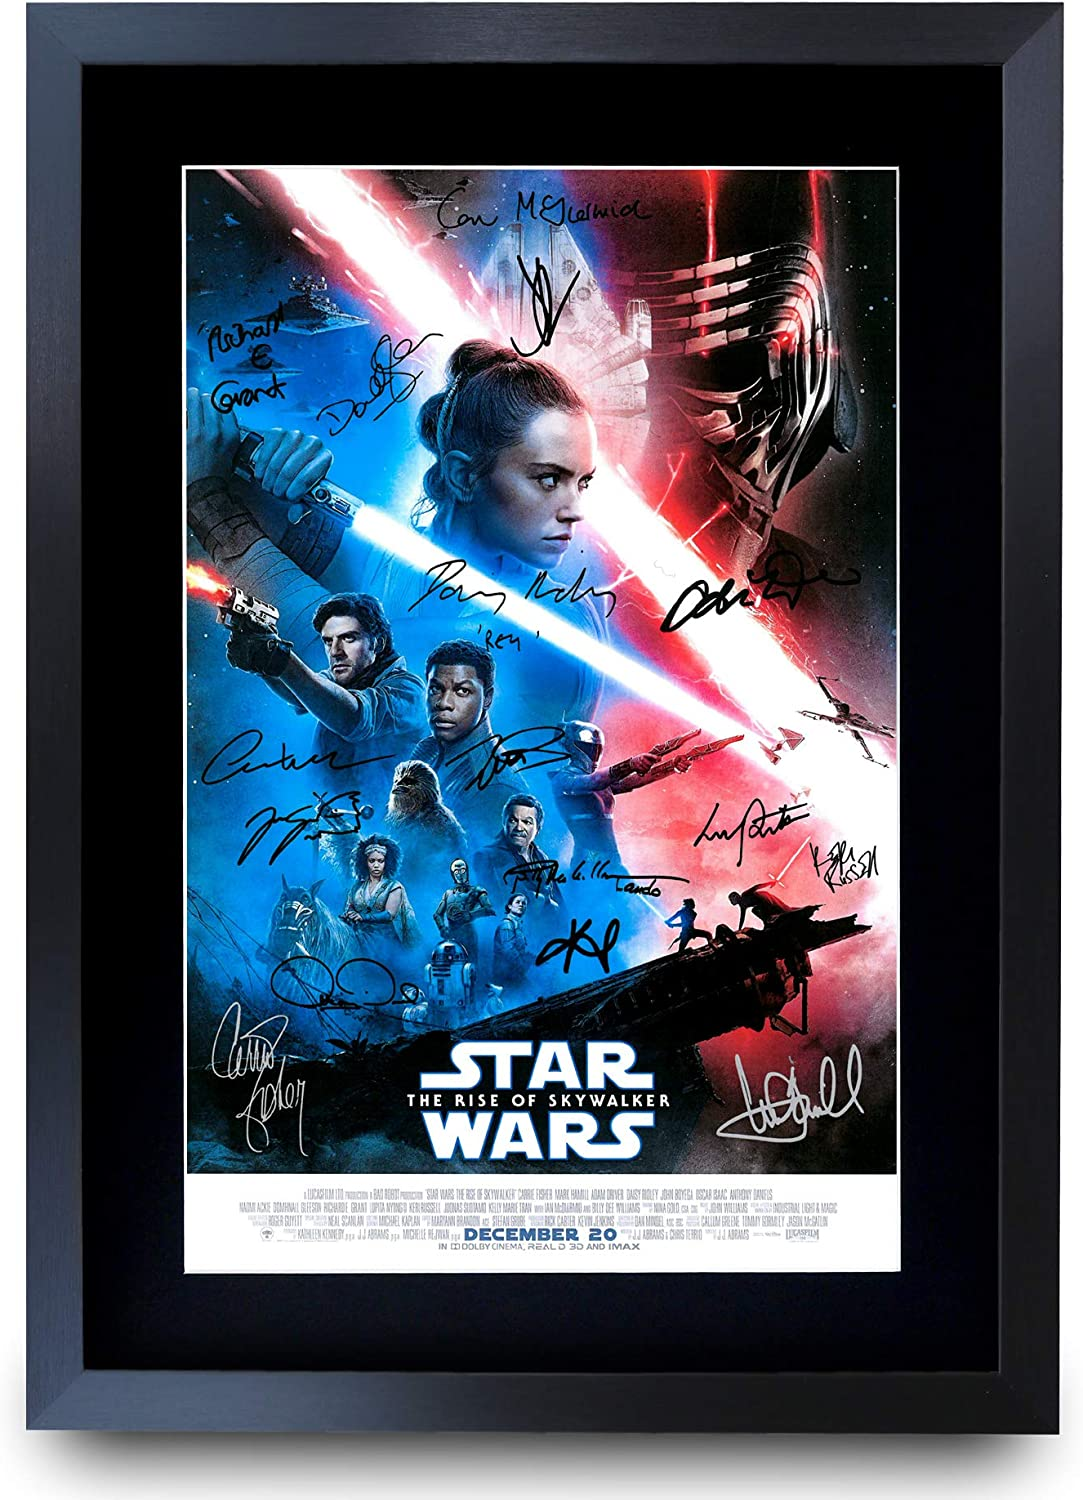 PacPrints buy one get one free Star wars the rise of skywalker v4 A4 movie poster 2019